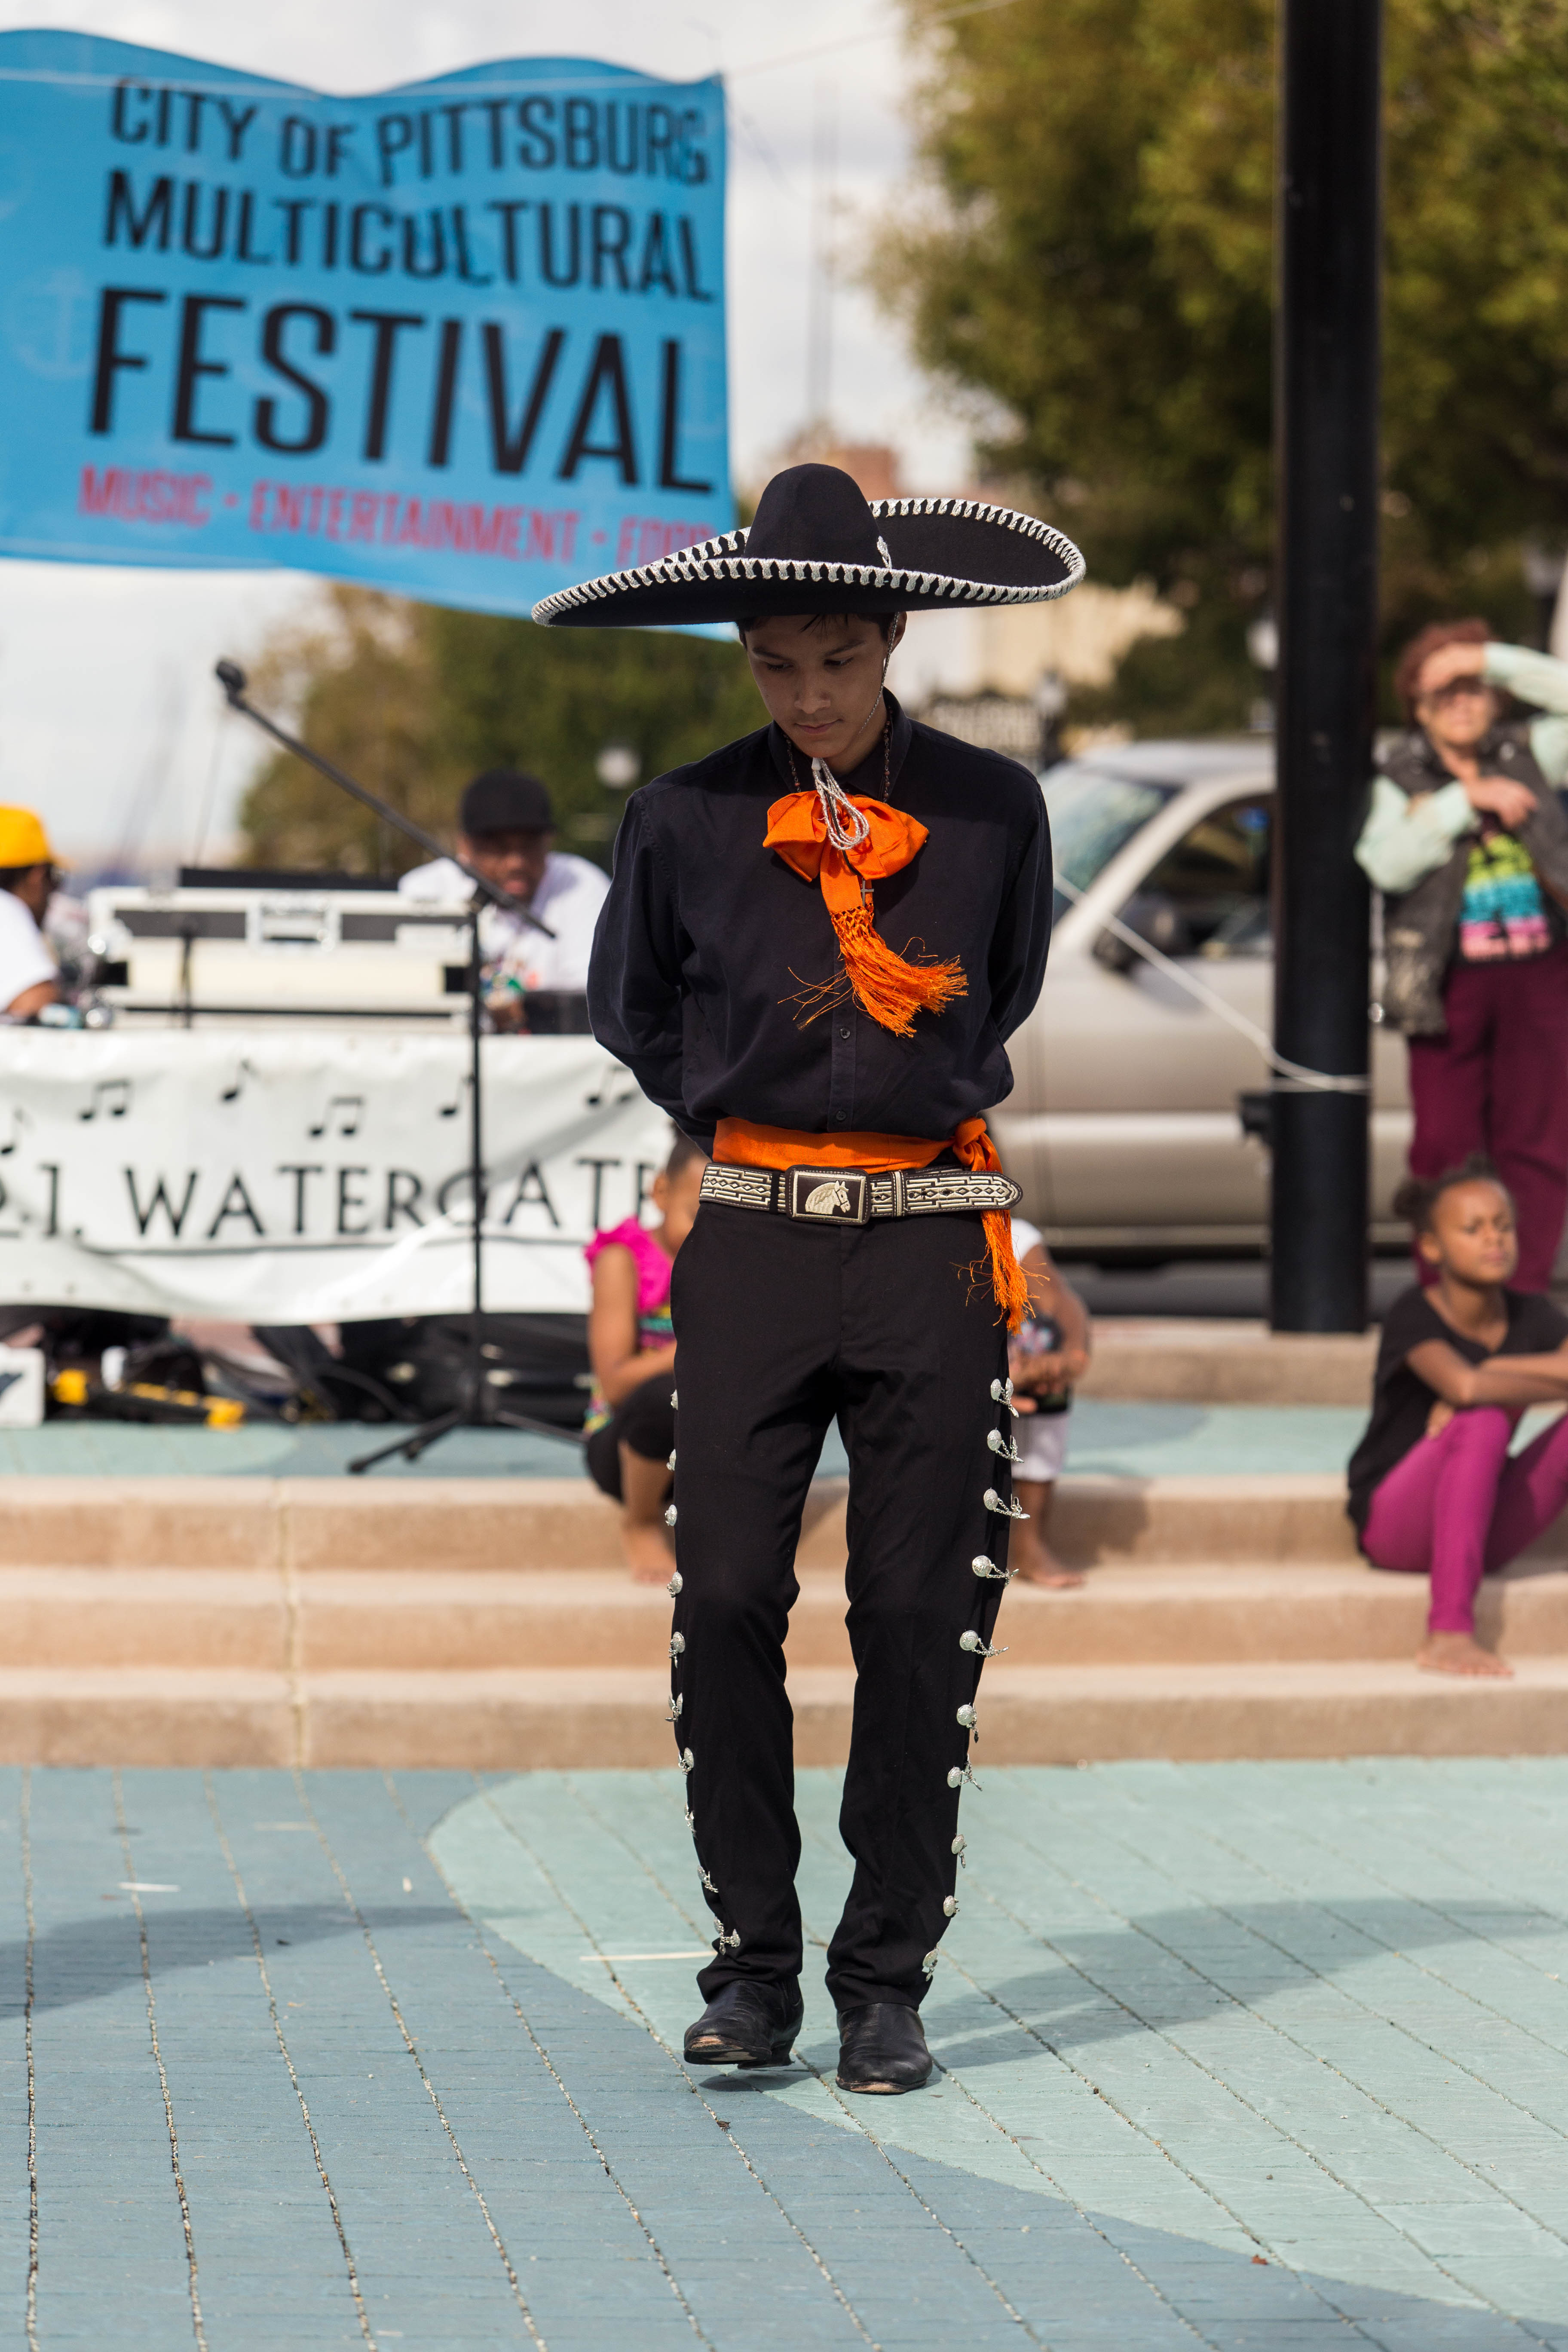 CITY_PITTSBURG_MULTICULTURAL_OCTOBER_2016 (621)